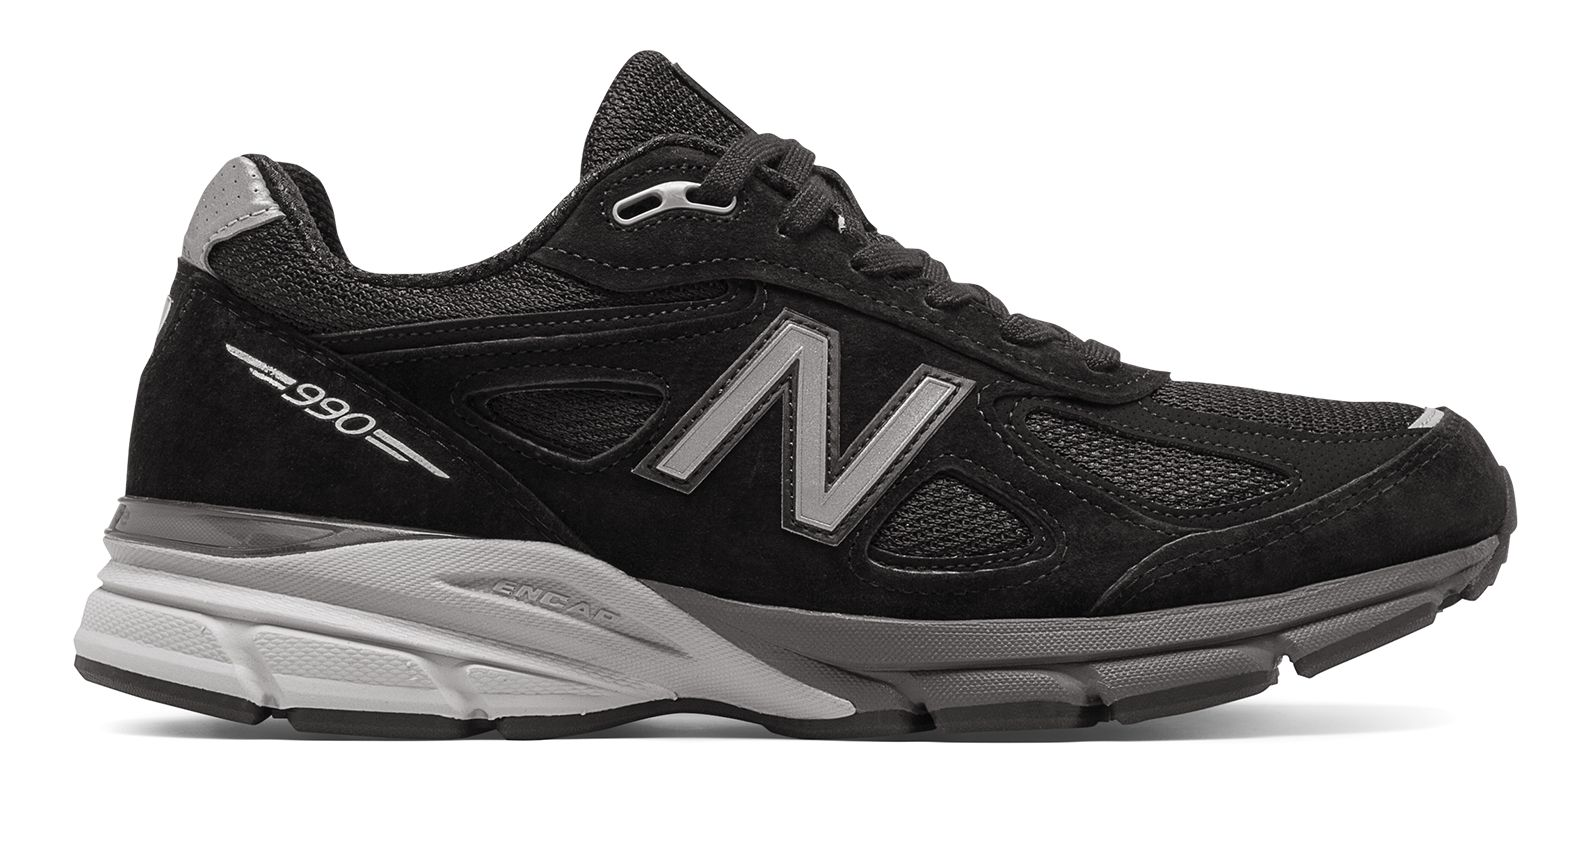 990v4 Made in US de Black with Silver